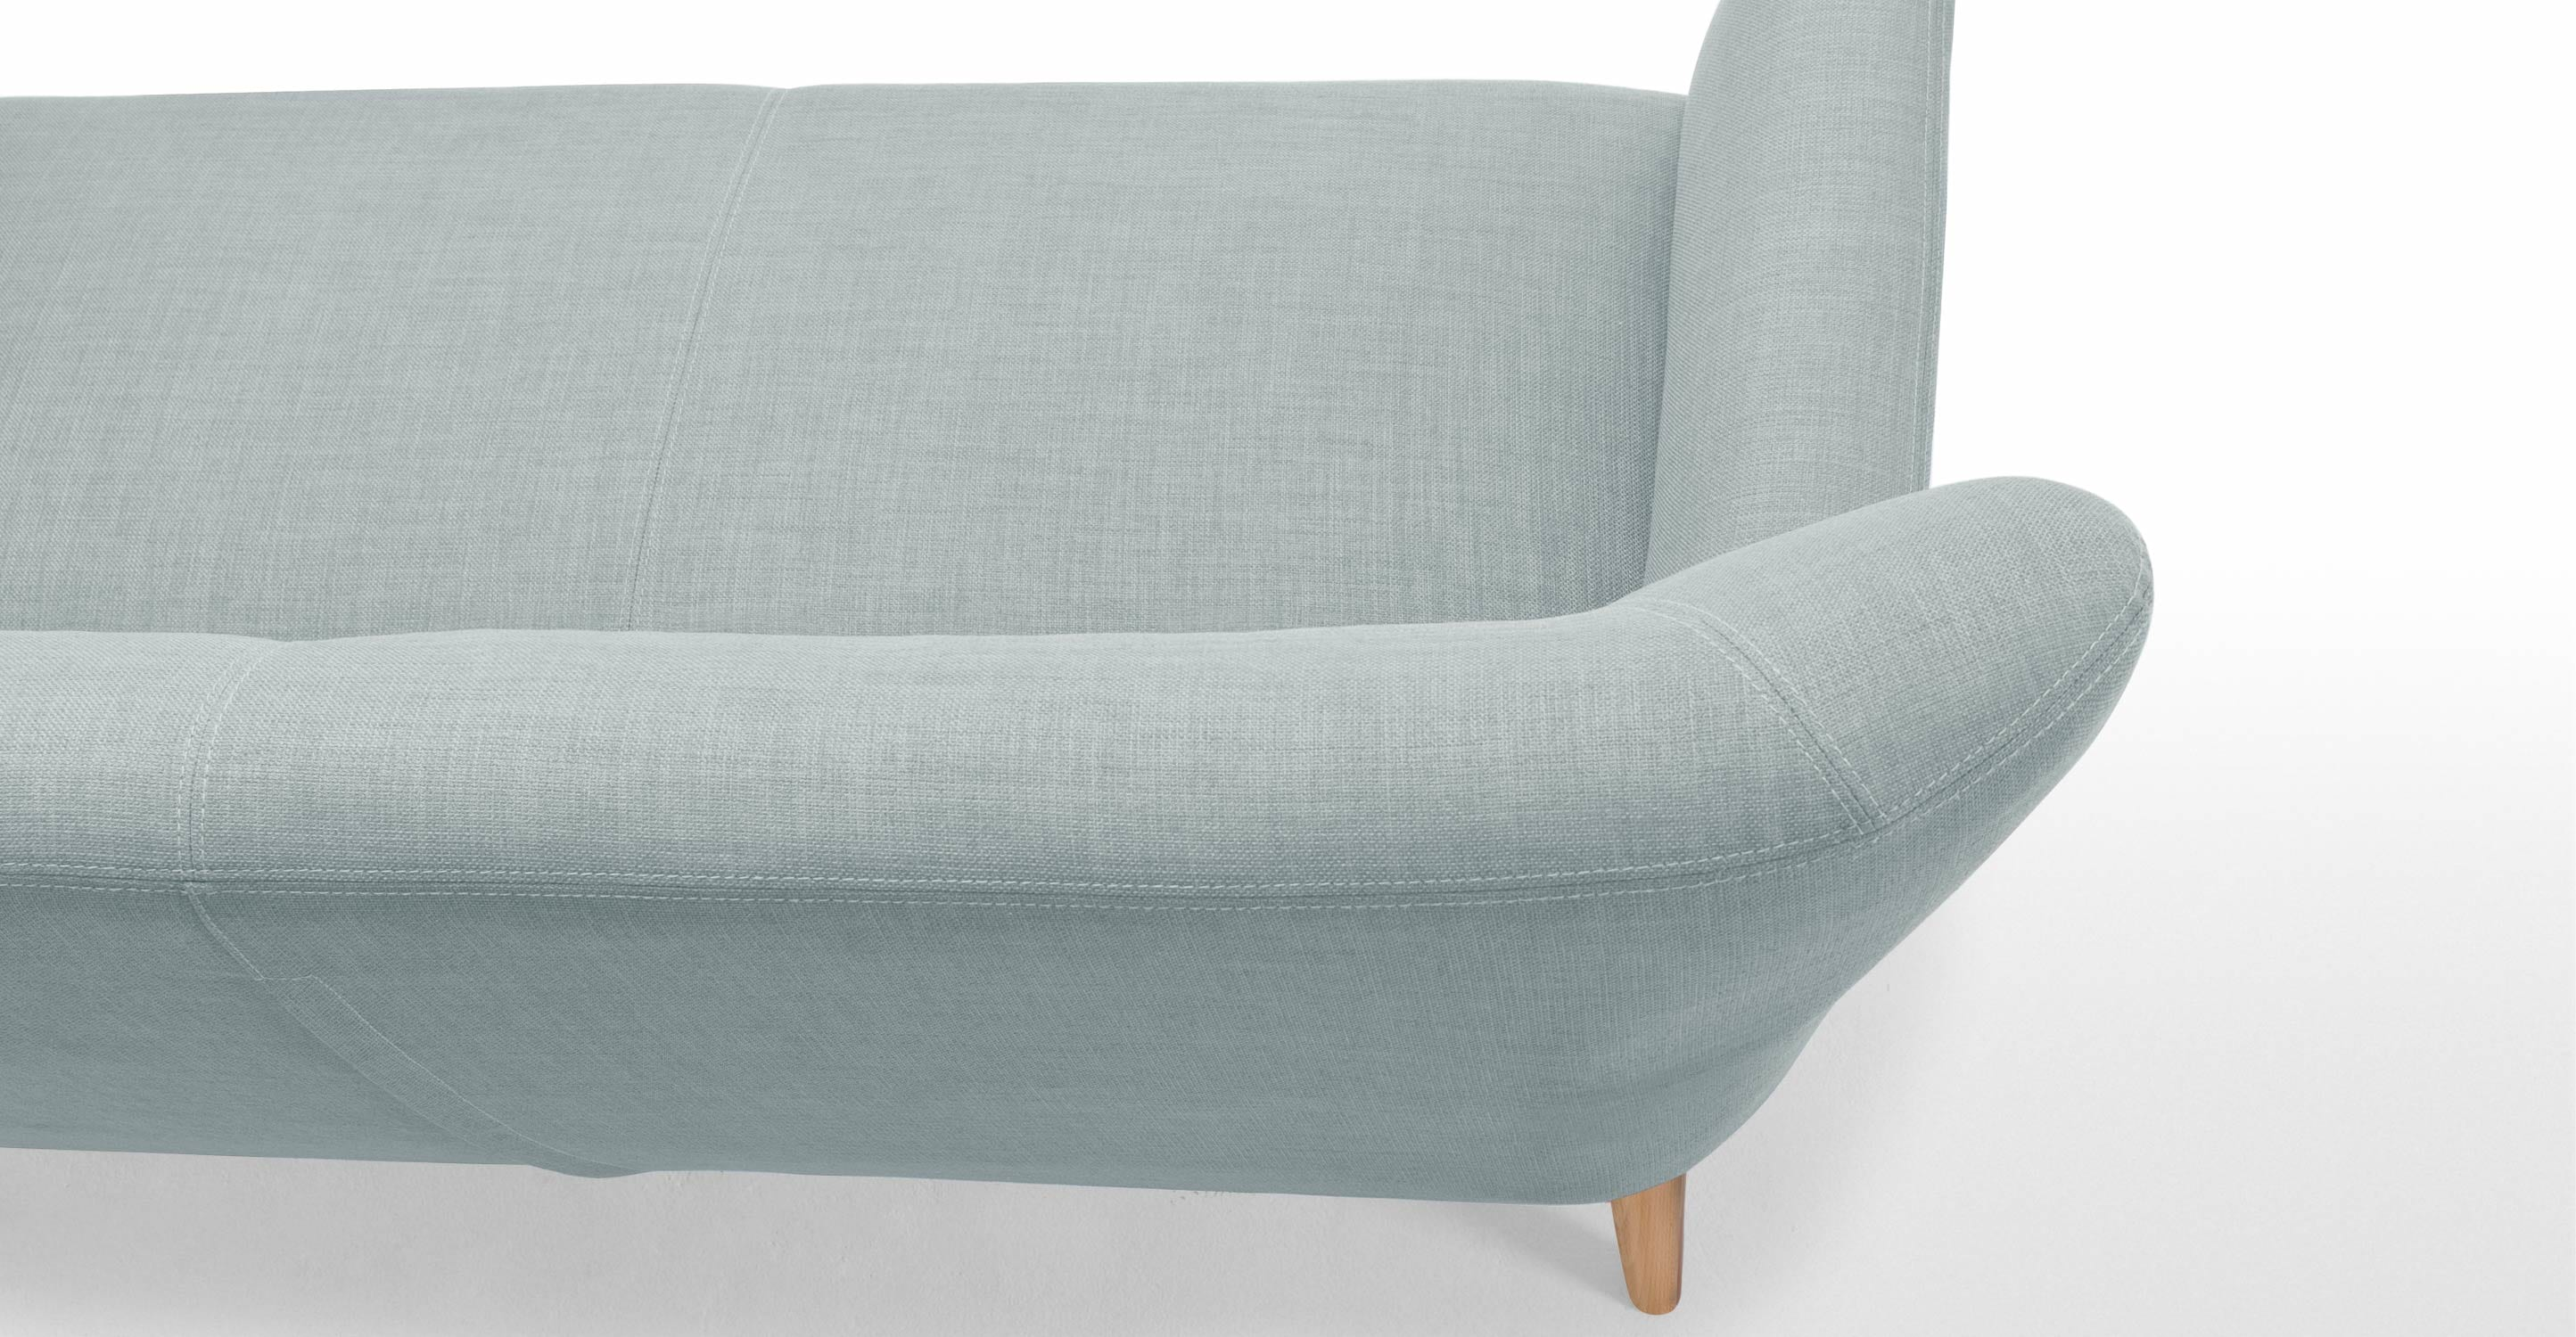 Made Quentin Sofa Quentin 2-sitzer-sofa In Eisblau | Made.com